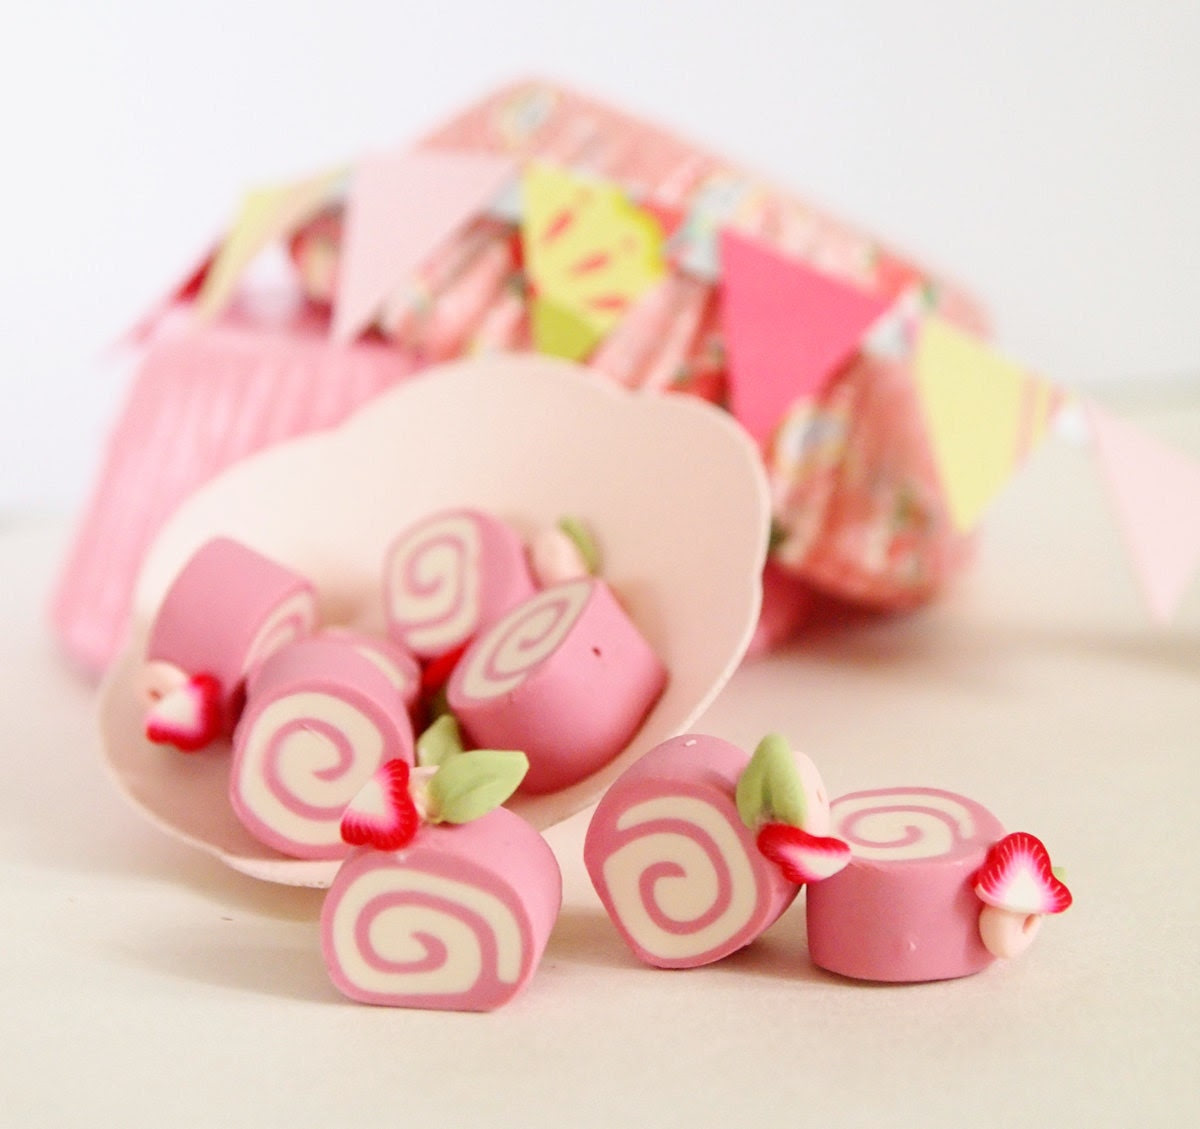 Handmade Cake beads, 5pcs Miniature Strawberry Roll Cake Charm